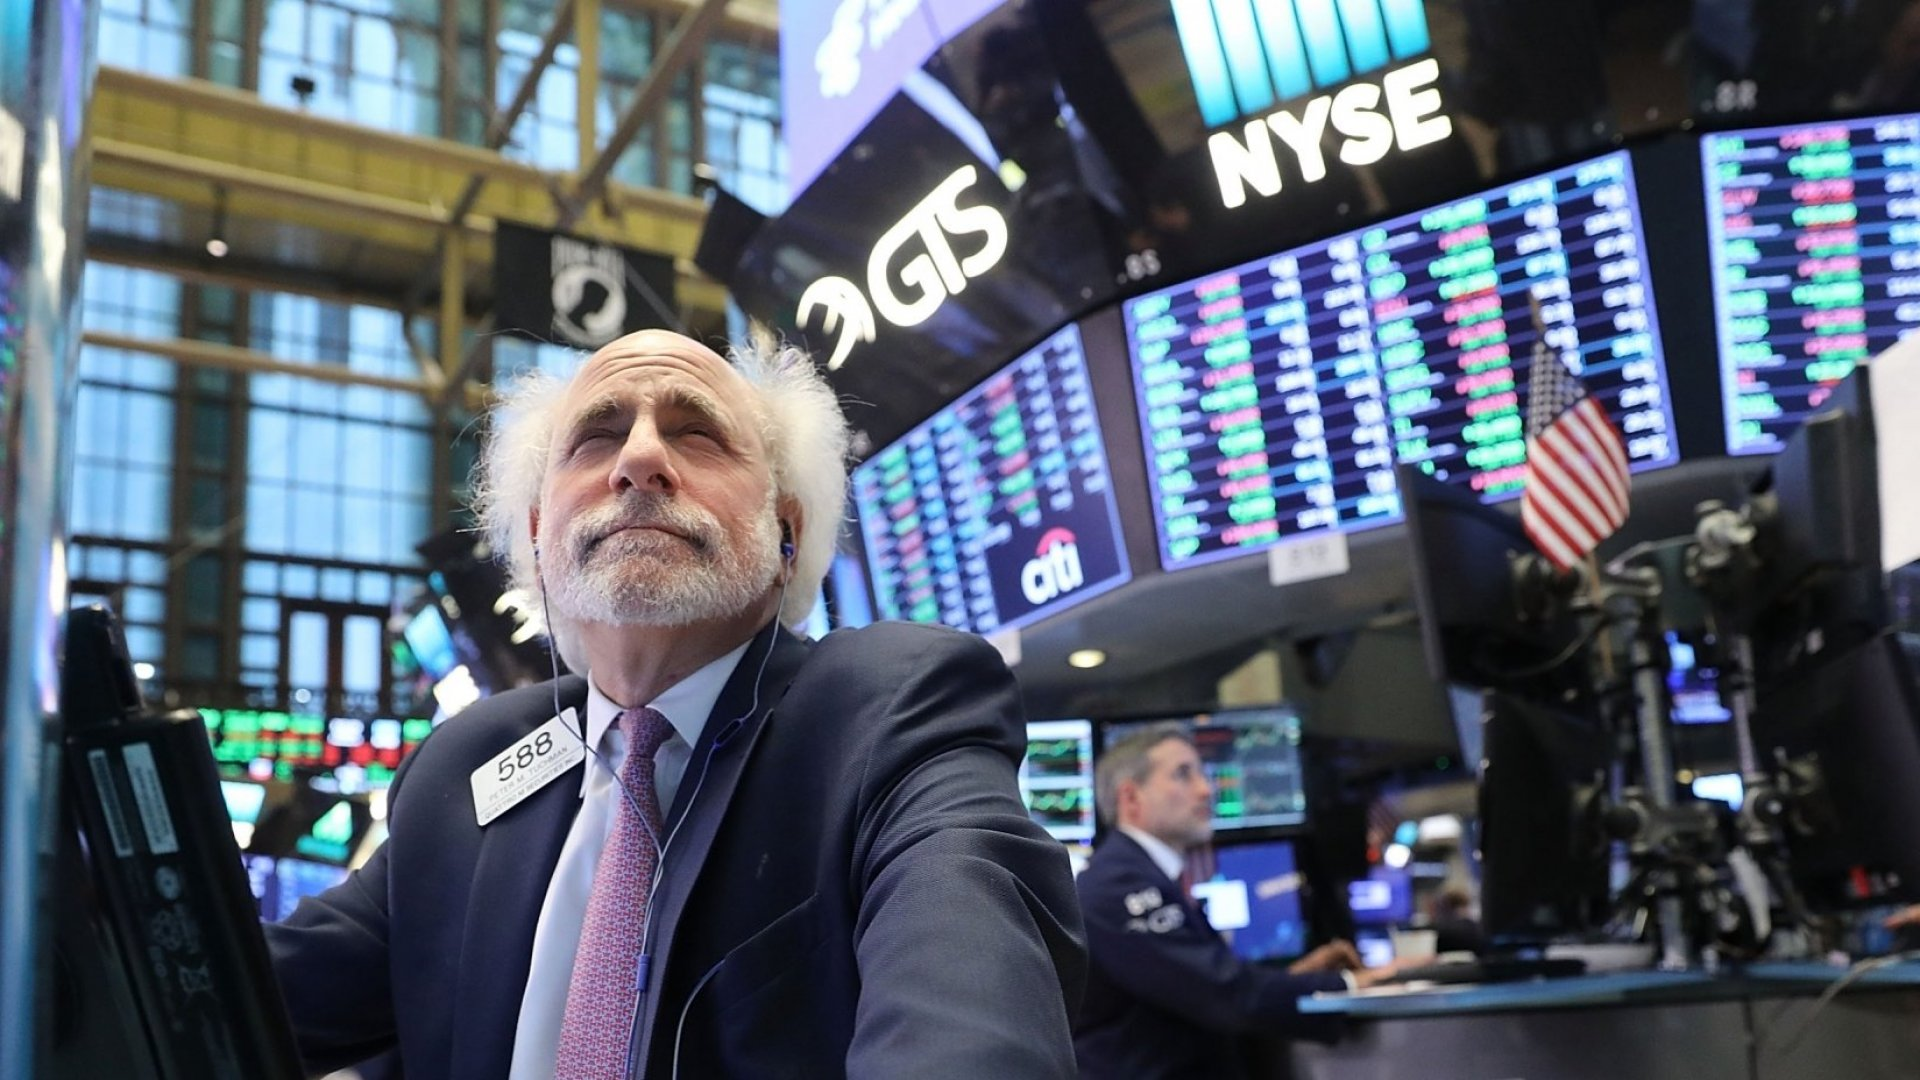 Traders work on the floor of the New York Stock Exchange (NYSE) on February 6, 2018 in New York City. Following Monday's over 1000 point drop, the Dow Jones Industrial Average closed up over 500 points.